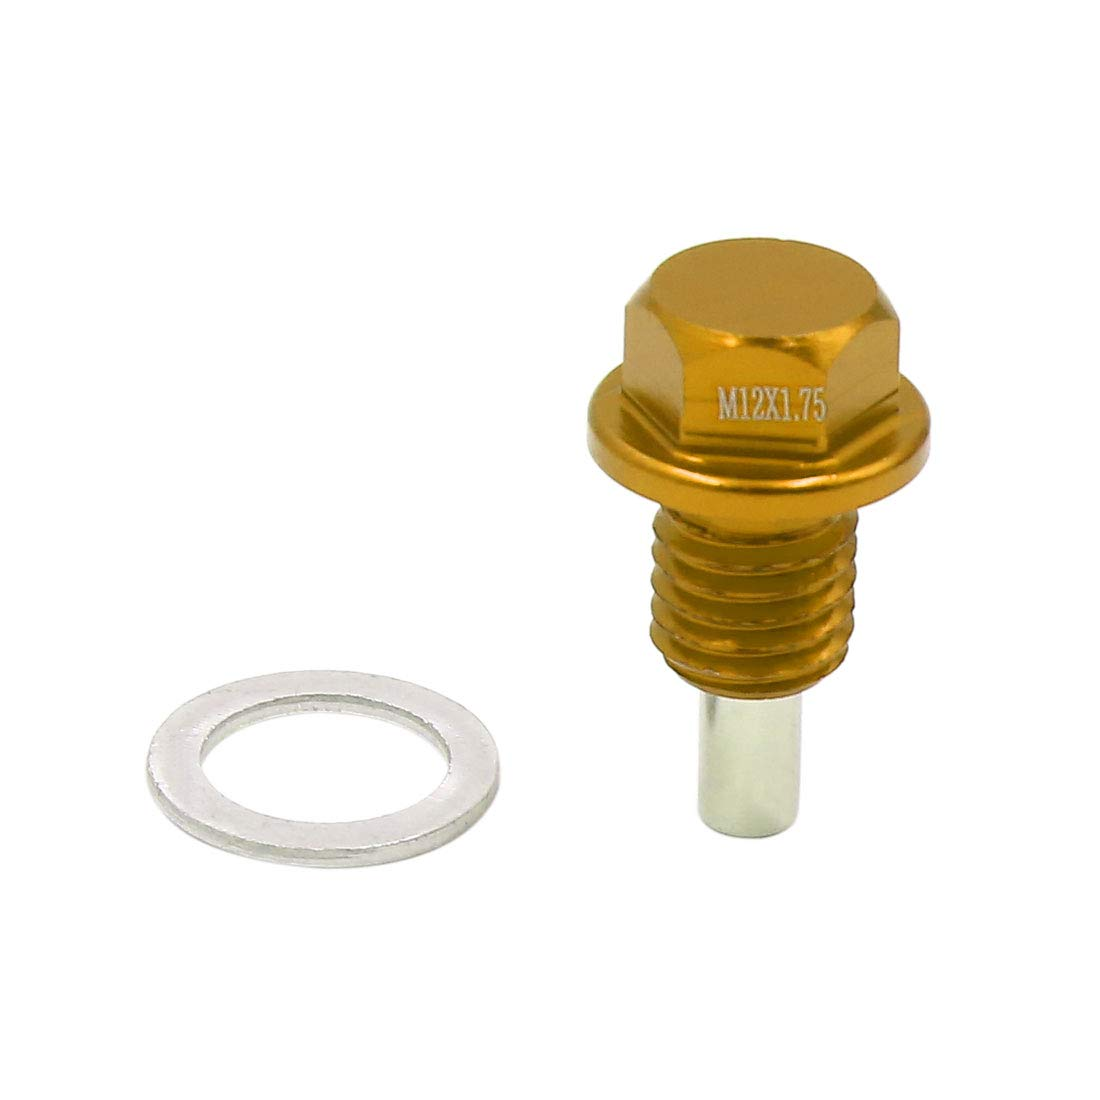 uxcell M12 x 1.75mm Thread Gold Tone Magnetic Auto Car Oil Pan Drain Bolt Kit w Washer